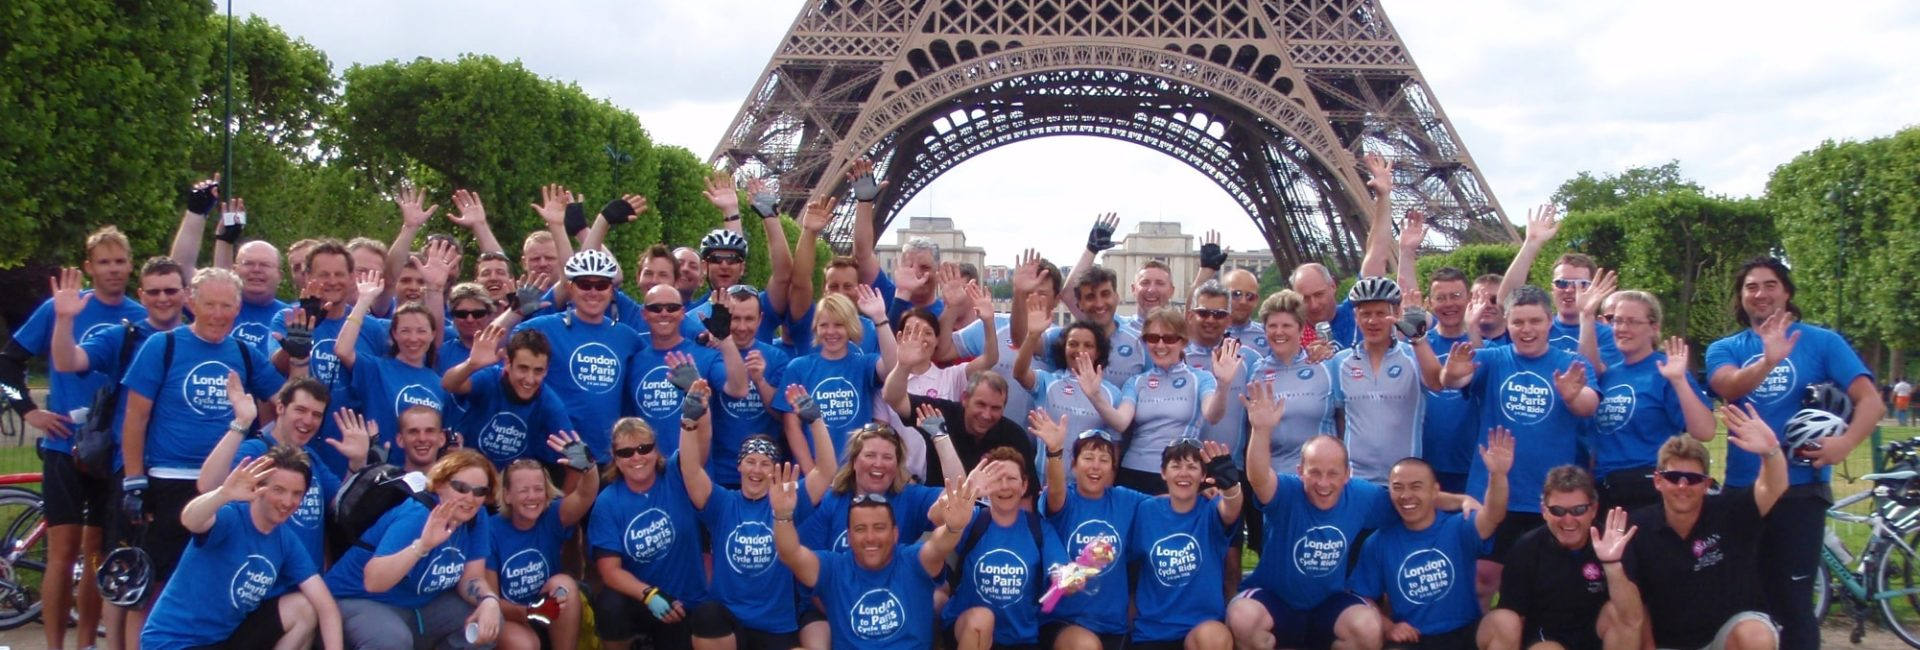 London to Paris Cycle Challenge The Myton Hospices Hospice Warwick Coventry Leamington Spa Rugby